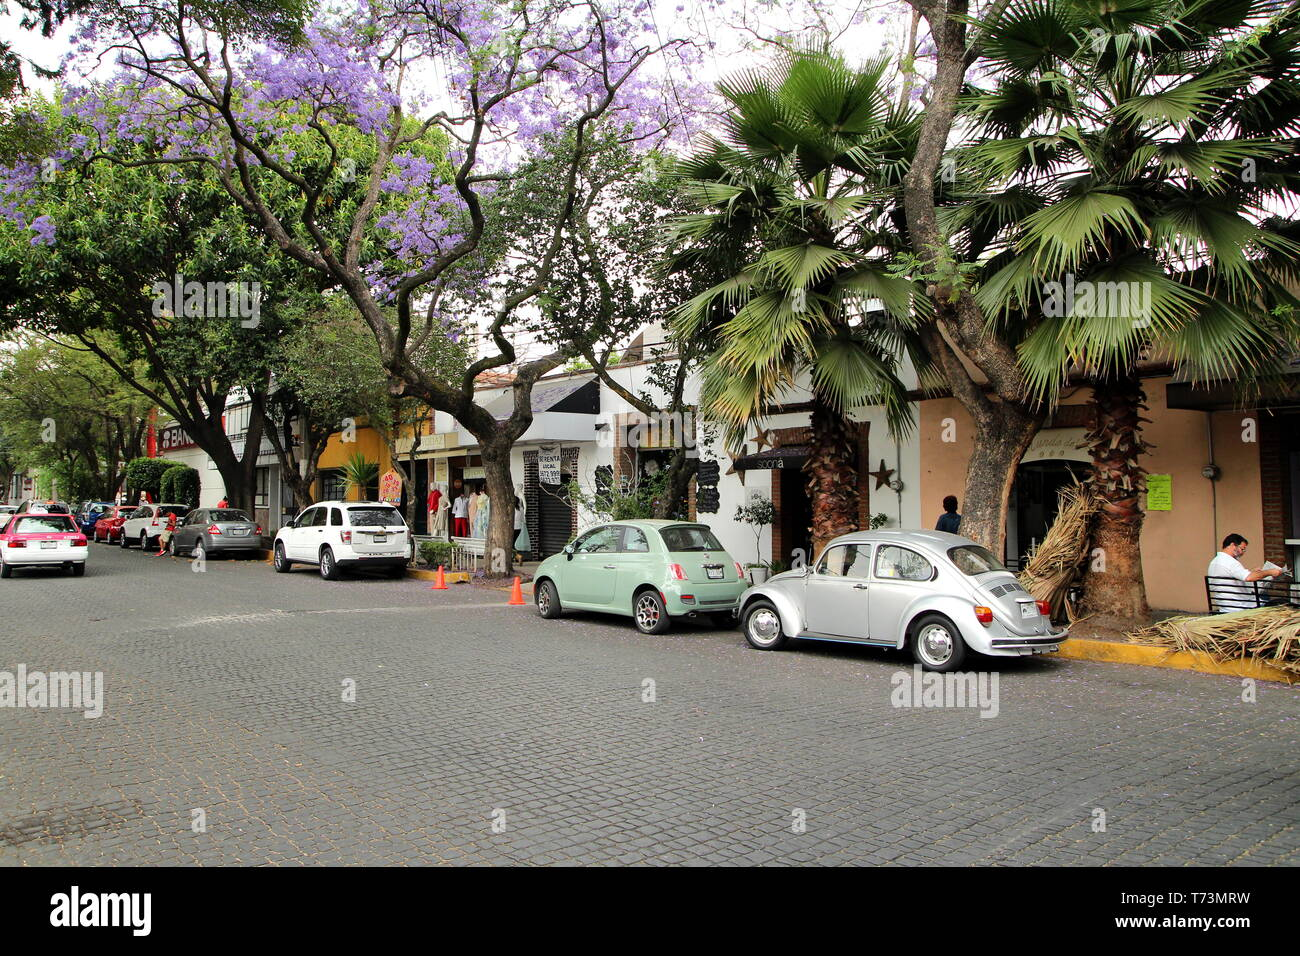 Coyoacan borough, Mexico city. - Stock Image